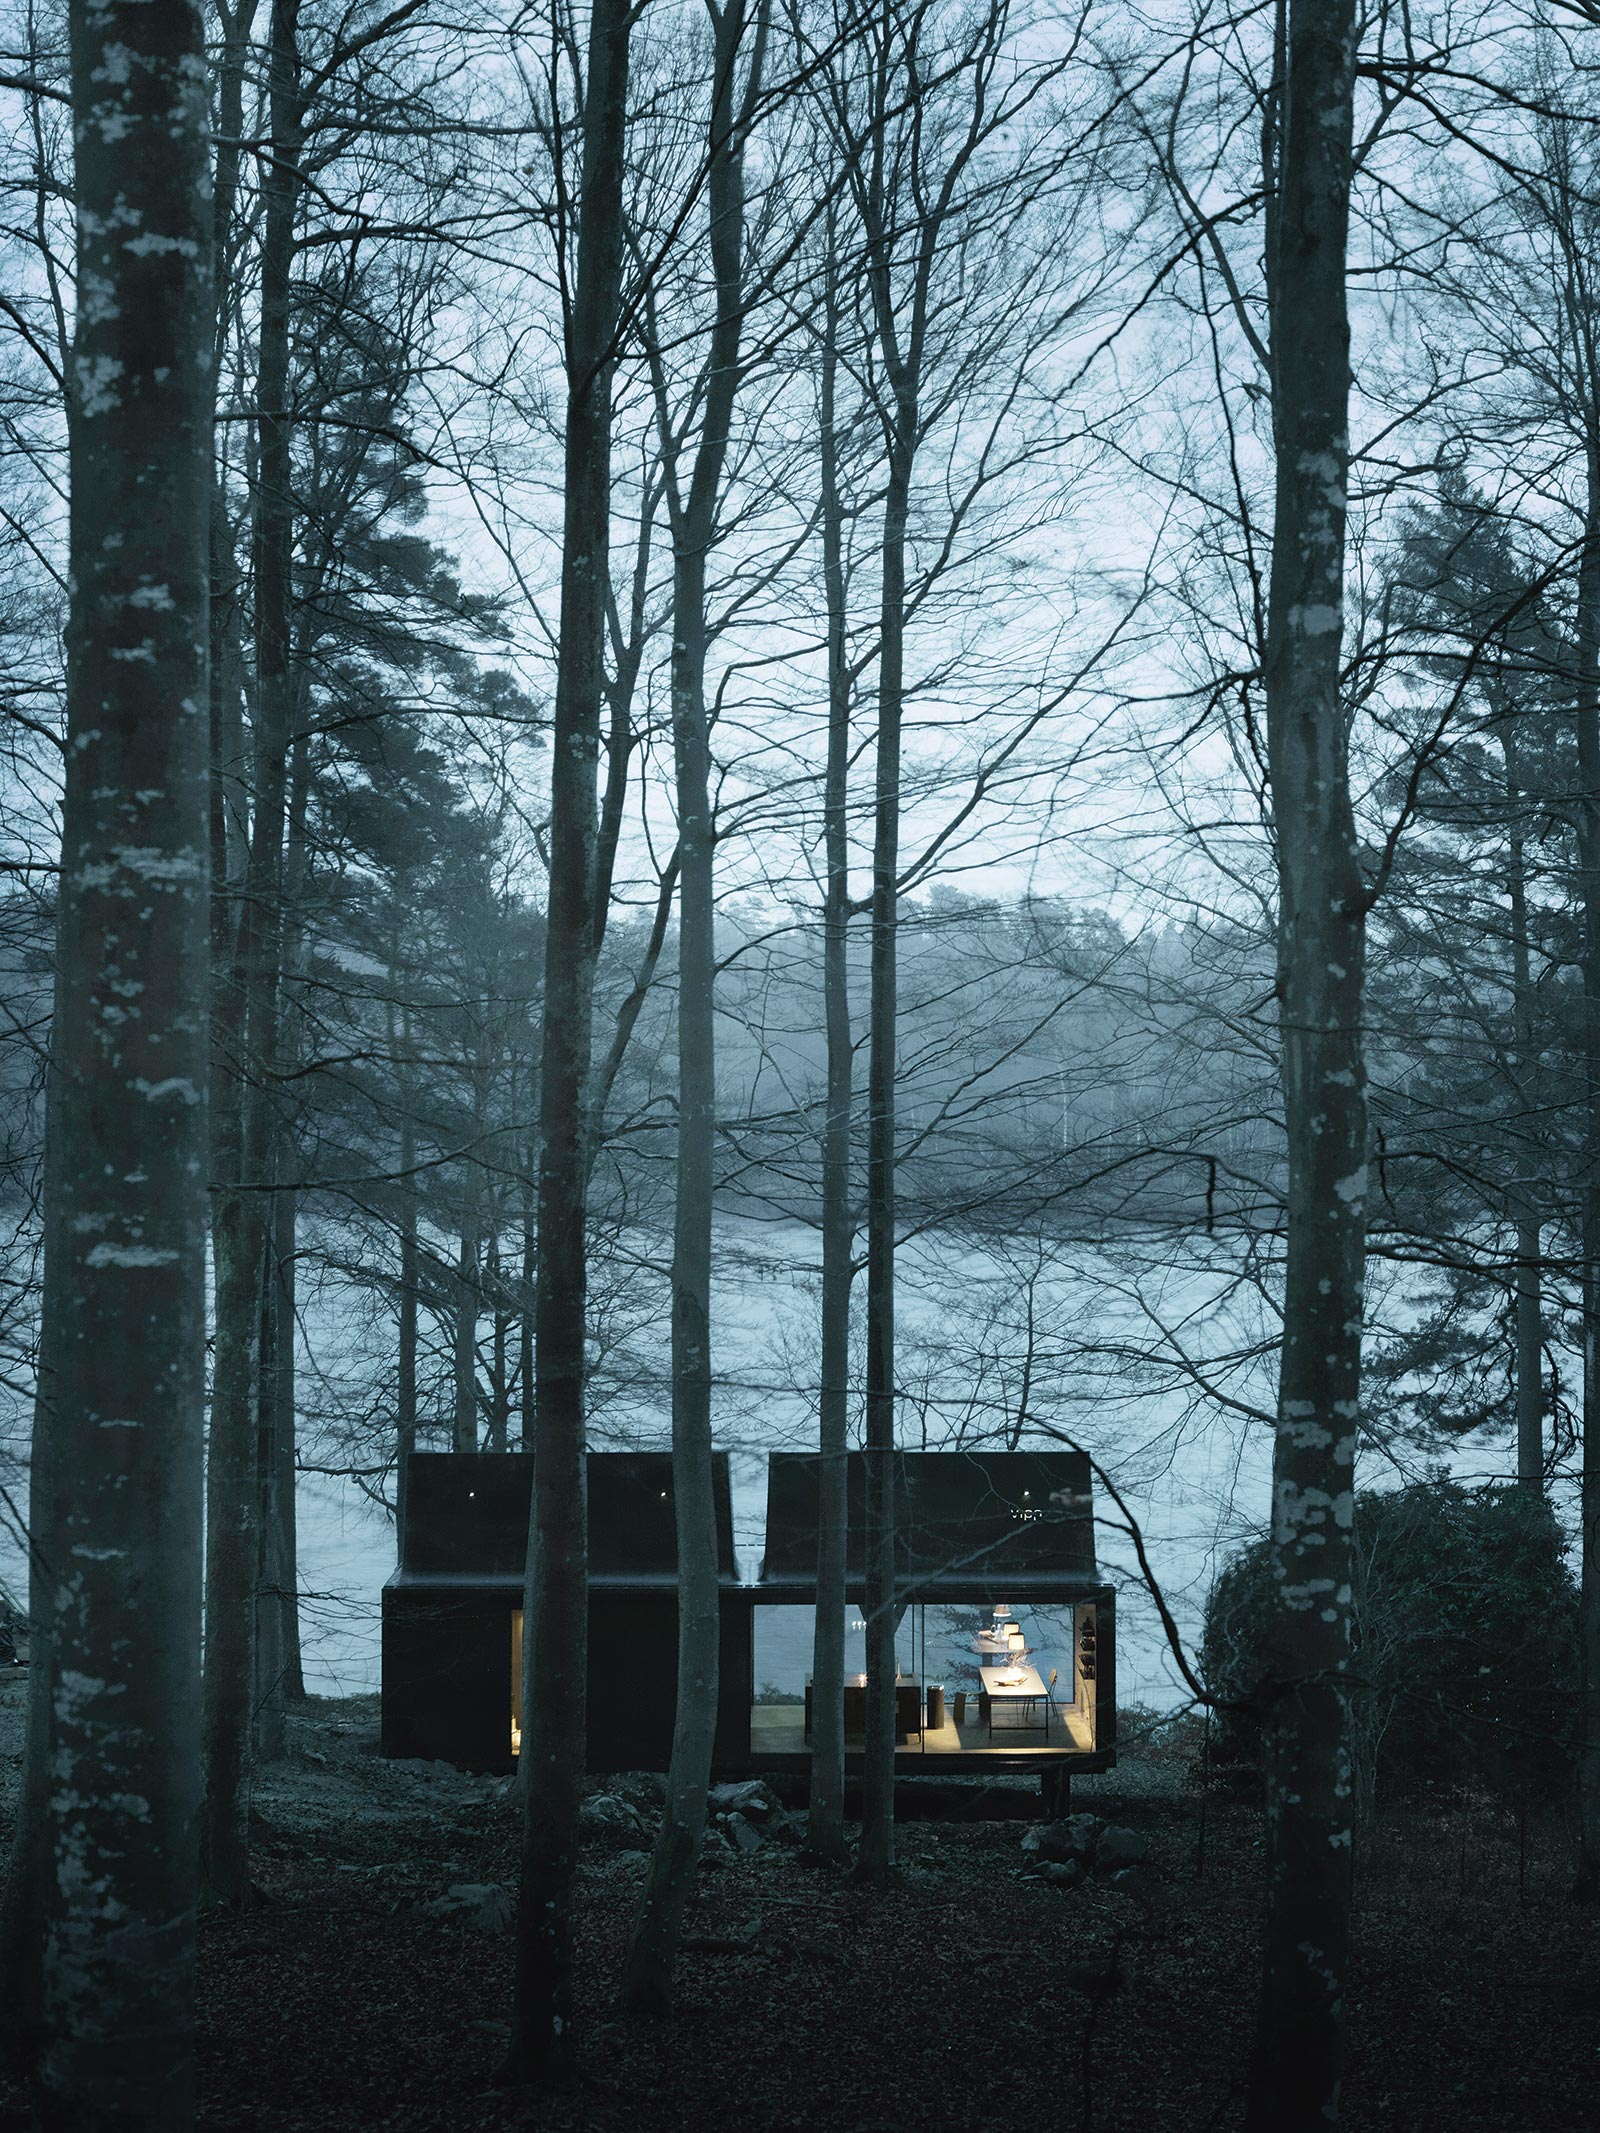 vipps-plug-and-play-getaway-shelter-33